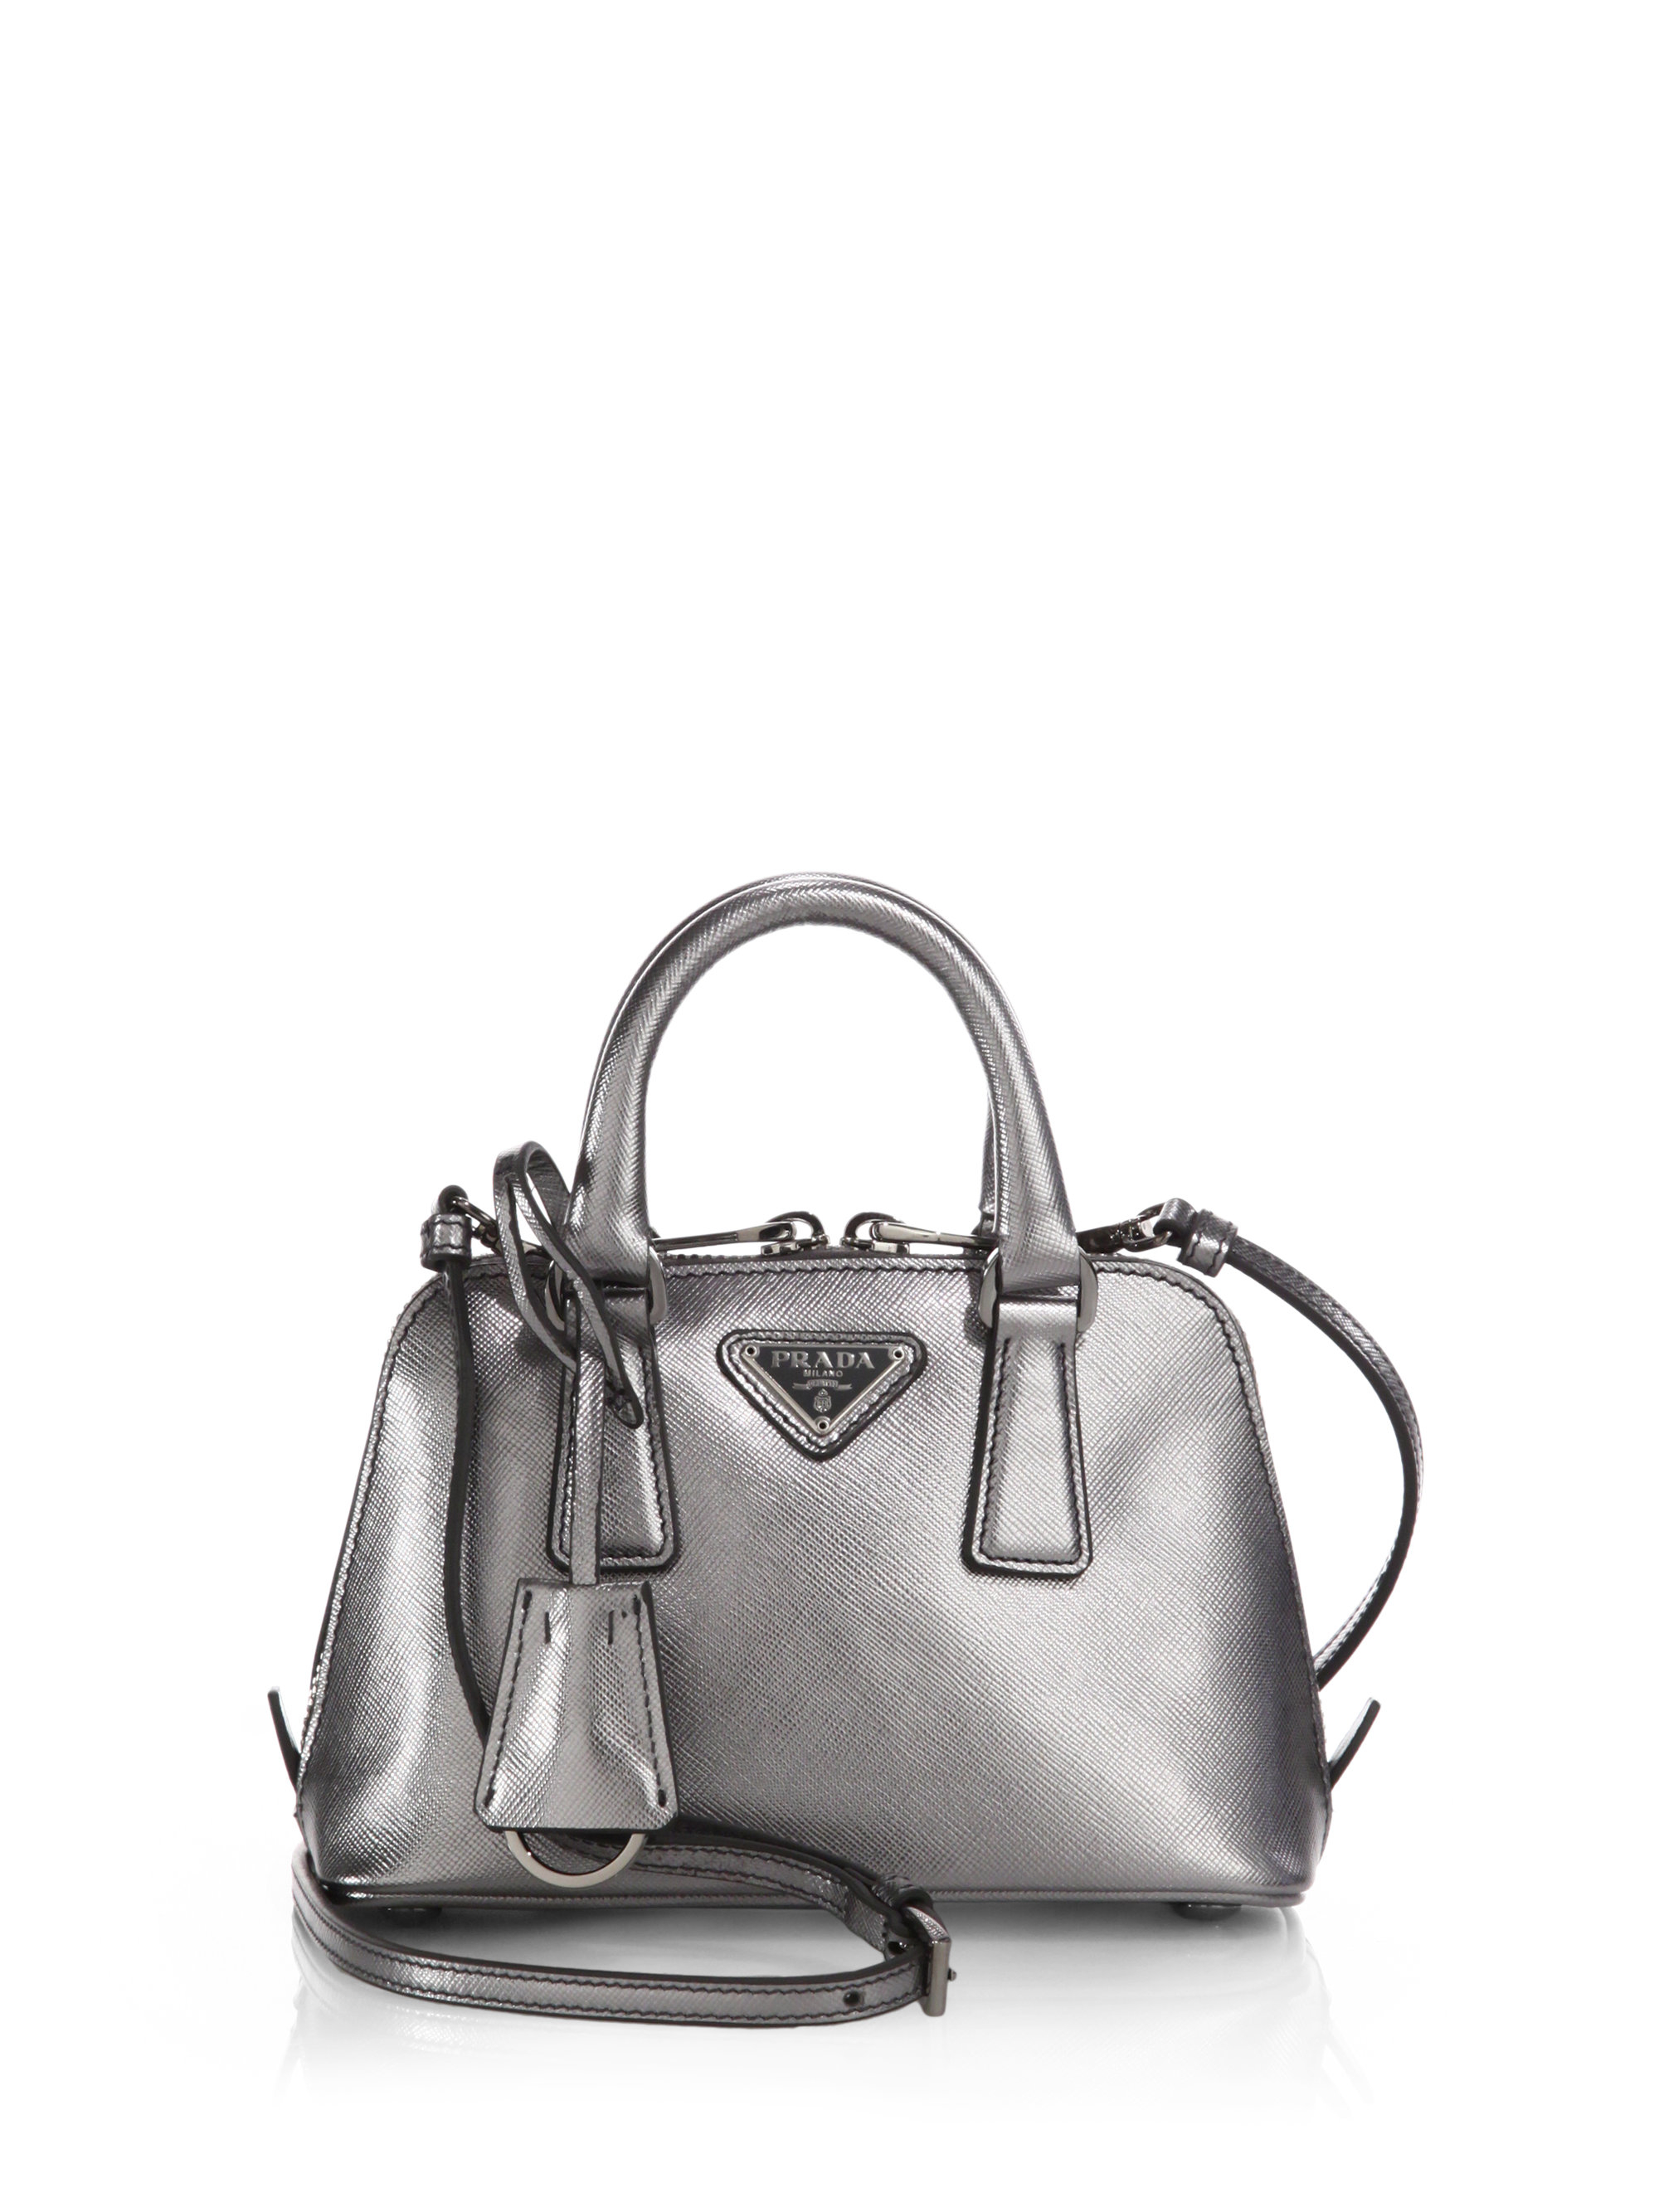 prada crocodile bag - prada-silver-saffiano-lux-mini-promenade-bag-product-1-25494373-0-997282630-normal.jpeg